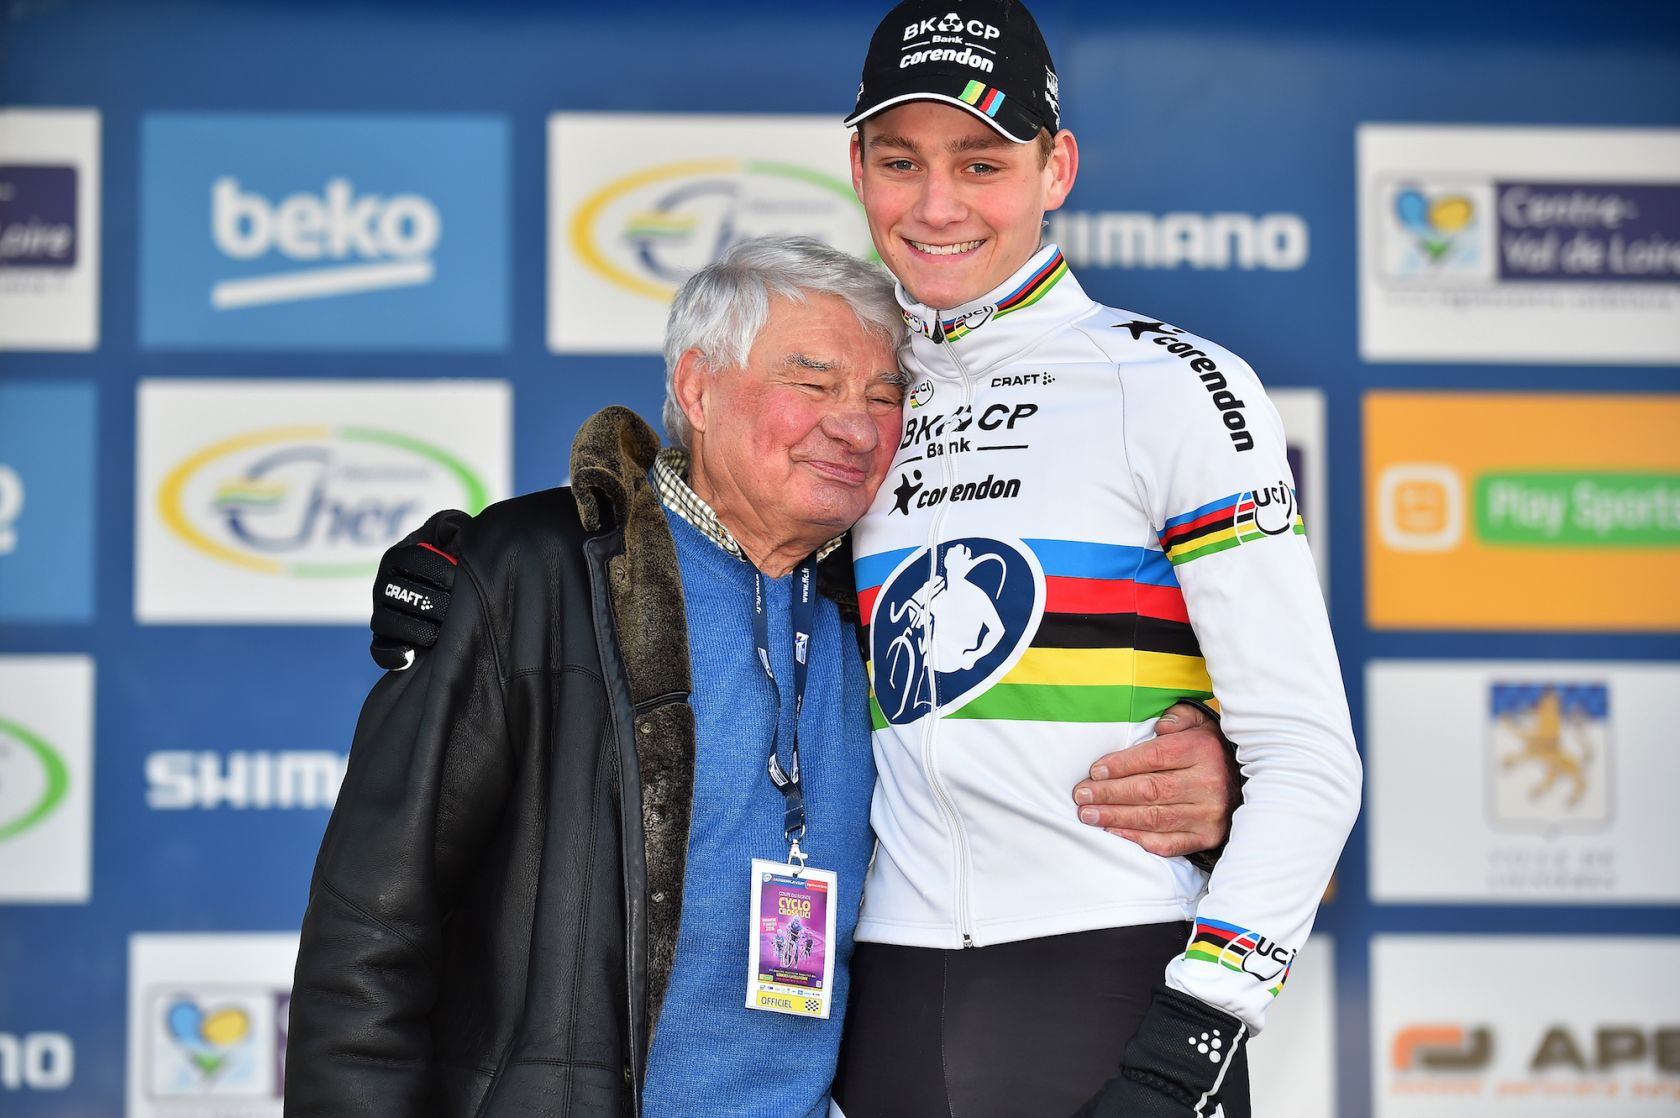 He will have to ride the Tour de France in future&39; says Mathieu van der Poel&39;s grandfather ...